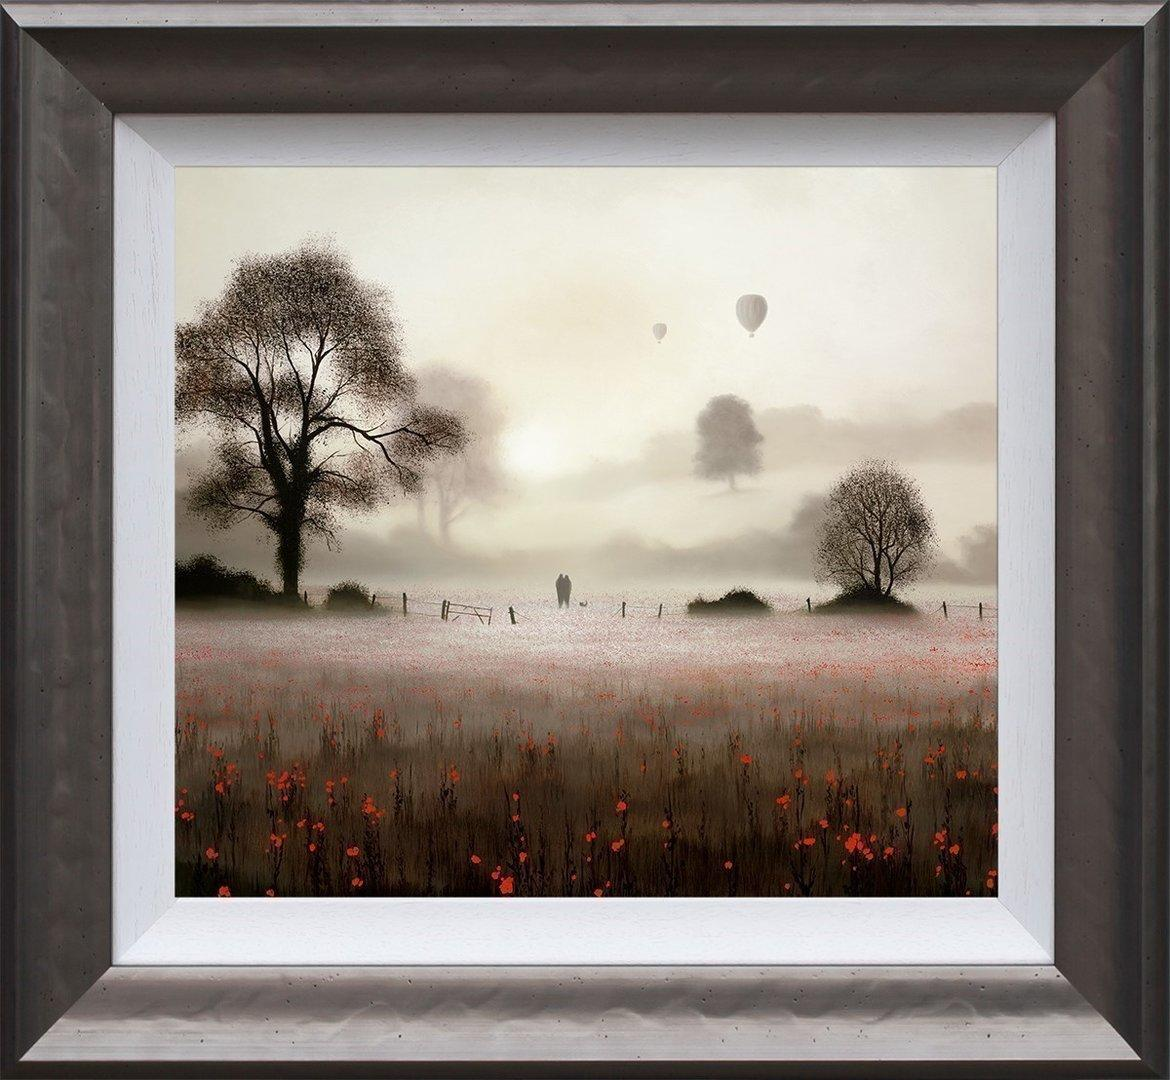 Dawn Voyagers by John Waterhouse - Limited Edition art print ZWTR063